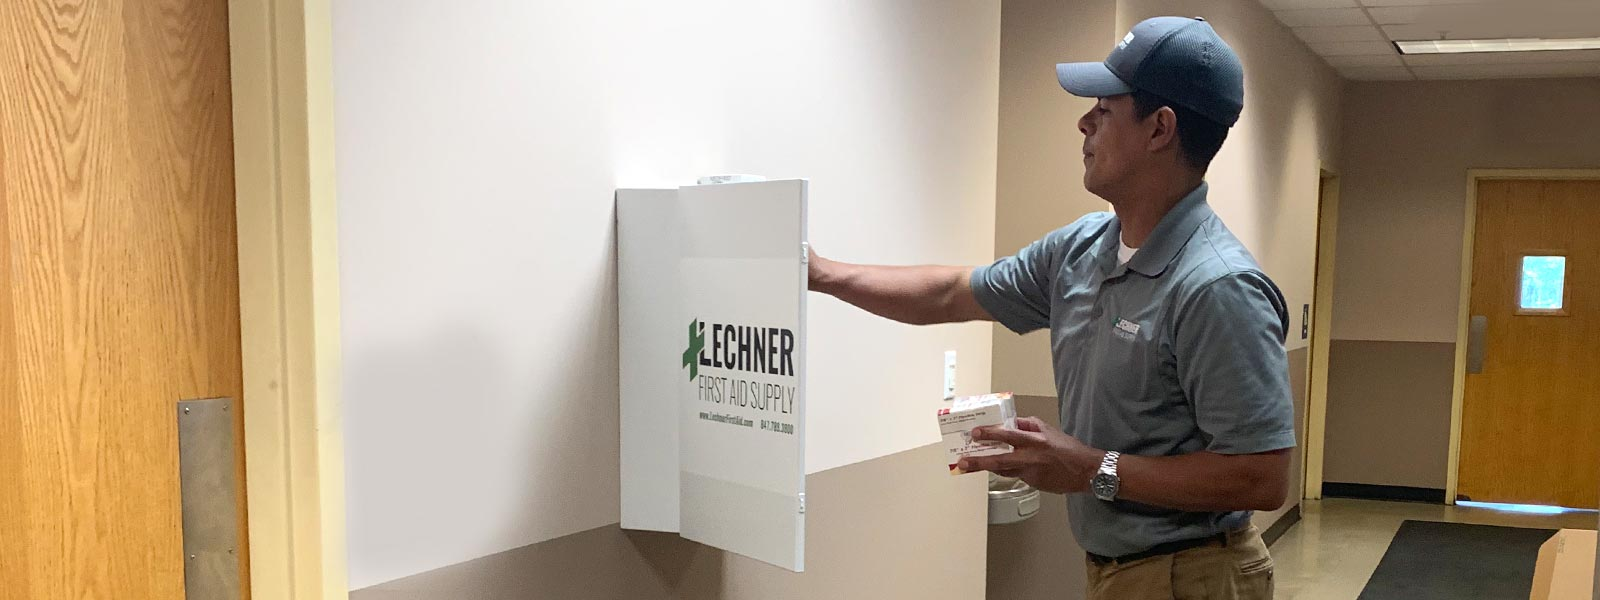 Lechner First Aid Sales Representative putting first aid supplies and ppe in a First Aid cabinet.